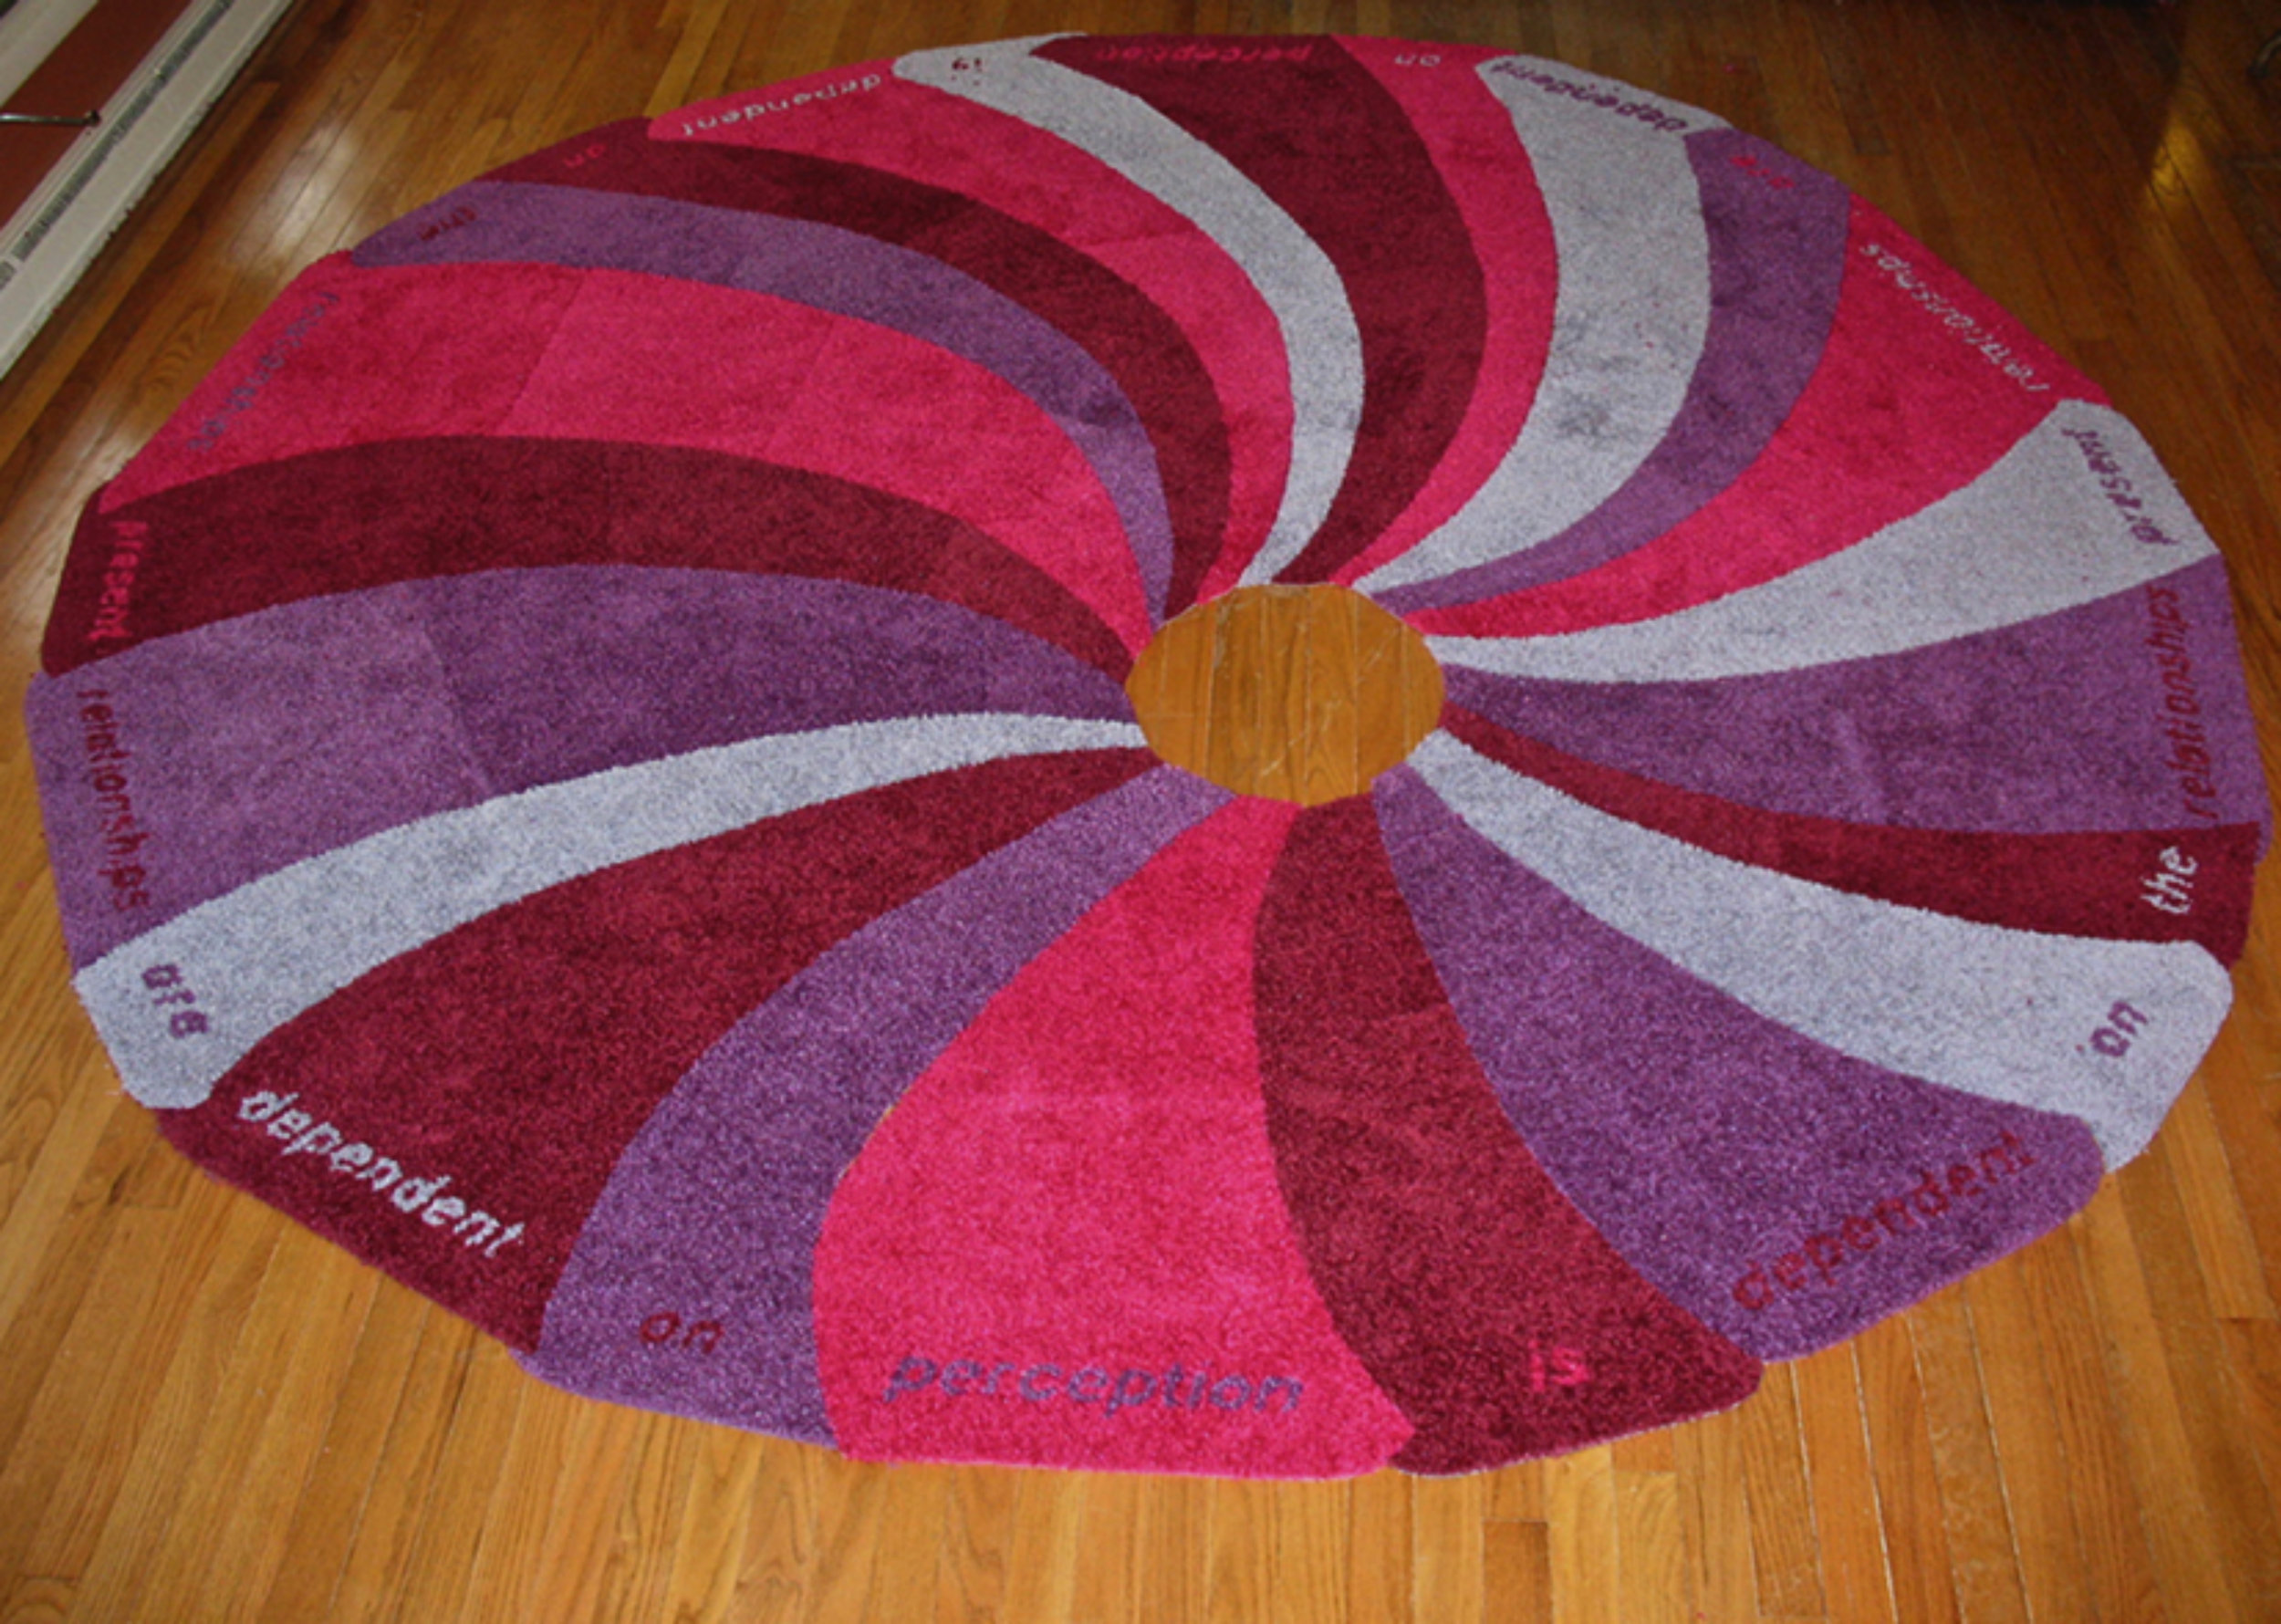 Image 19  Title: Forces of Nature: Whirlpools and Walmart Bath Rugs  Year: 2008  Dimensions: 108 in x 116 in  Media: Walmart clearance bath rugs and duct tape